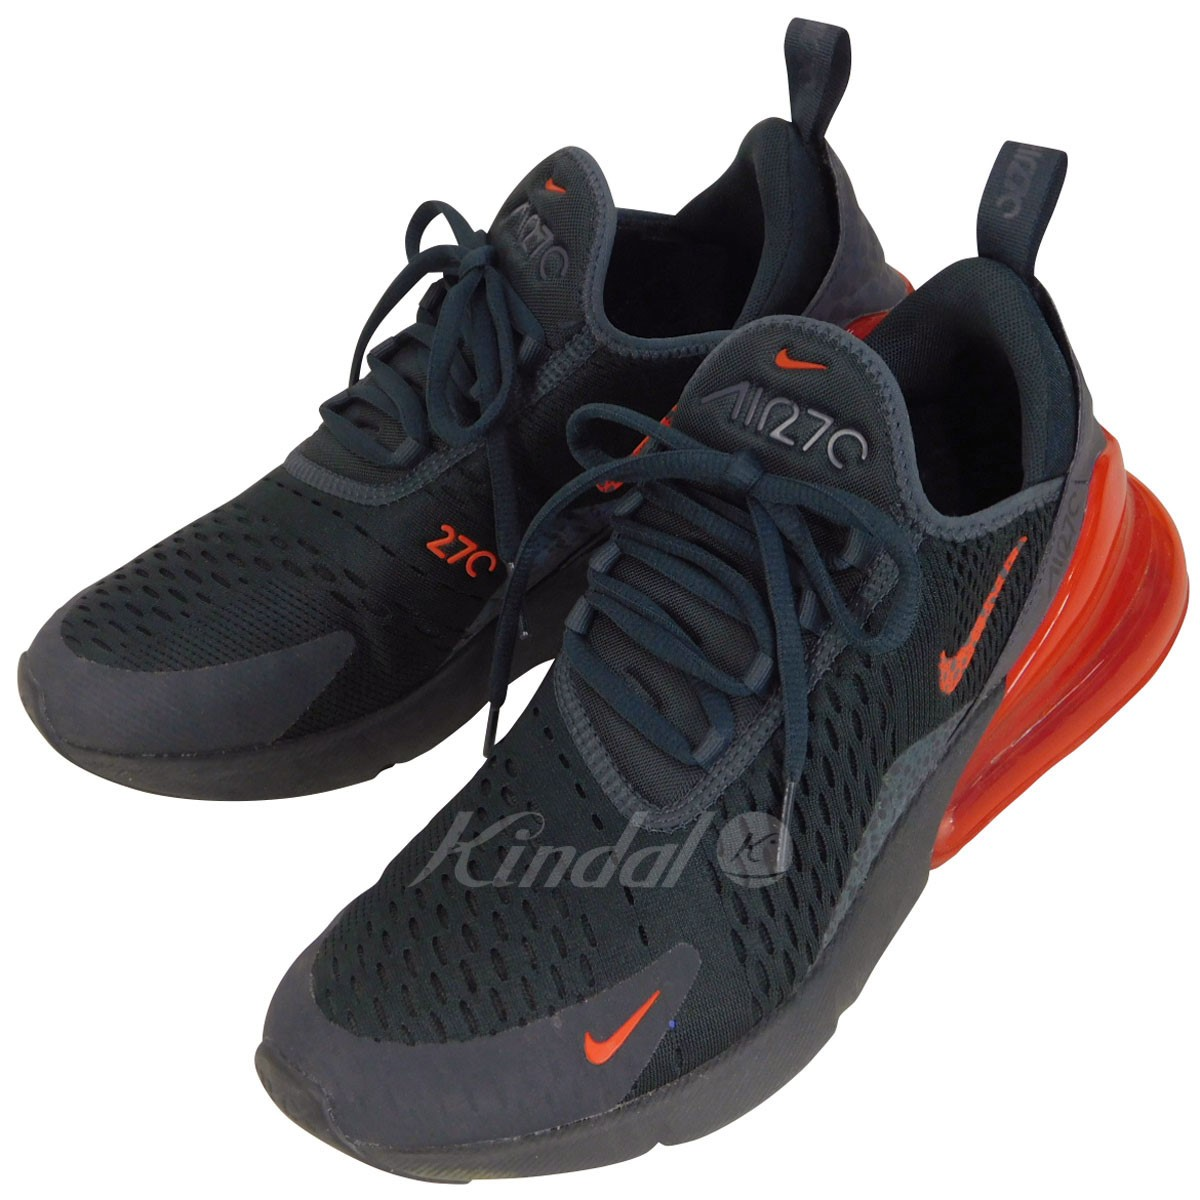 NIKE AIR MAX 270 SE REFLECTIVE BQ6525 001 sneakers black X red size: 26 5cm (Nike)